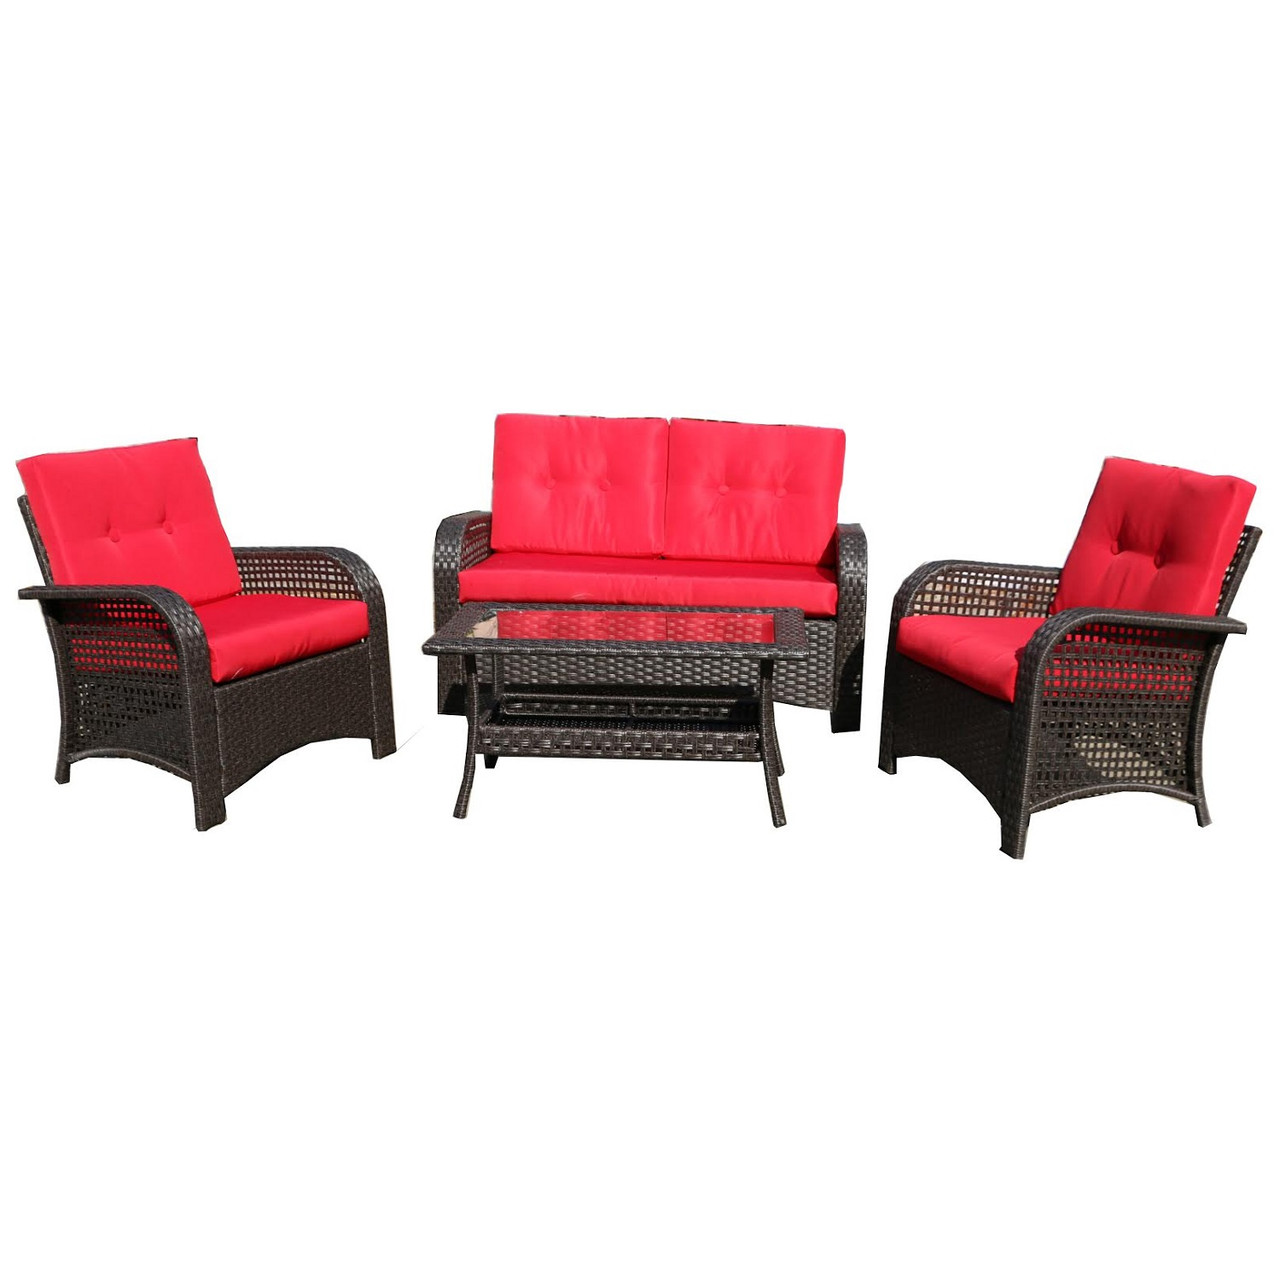 Red Patio Chairs 4 Piece Brown Resin Wicker Outdoor Patio Furniture Set